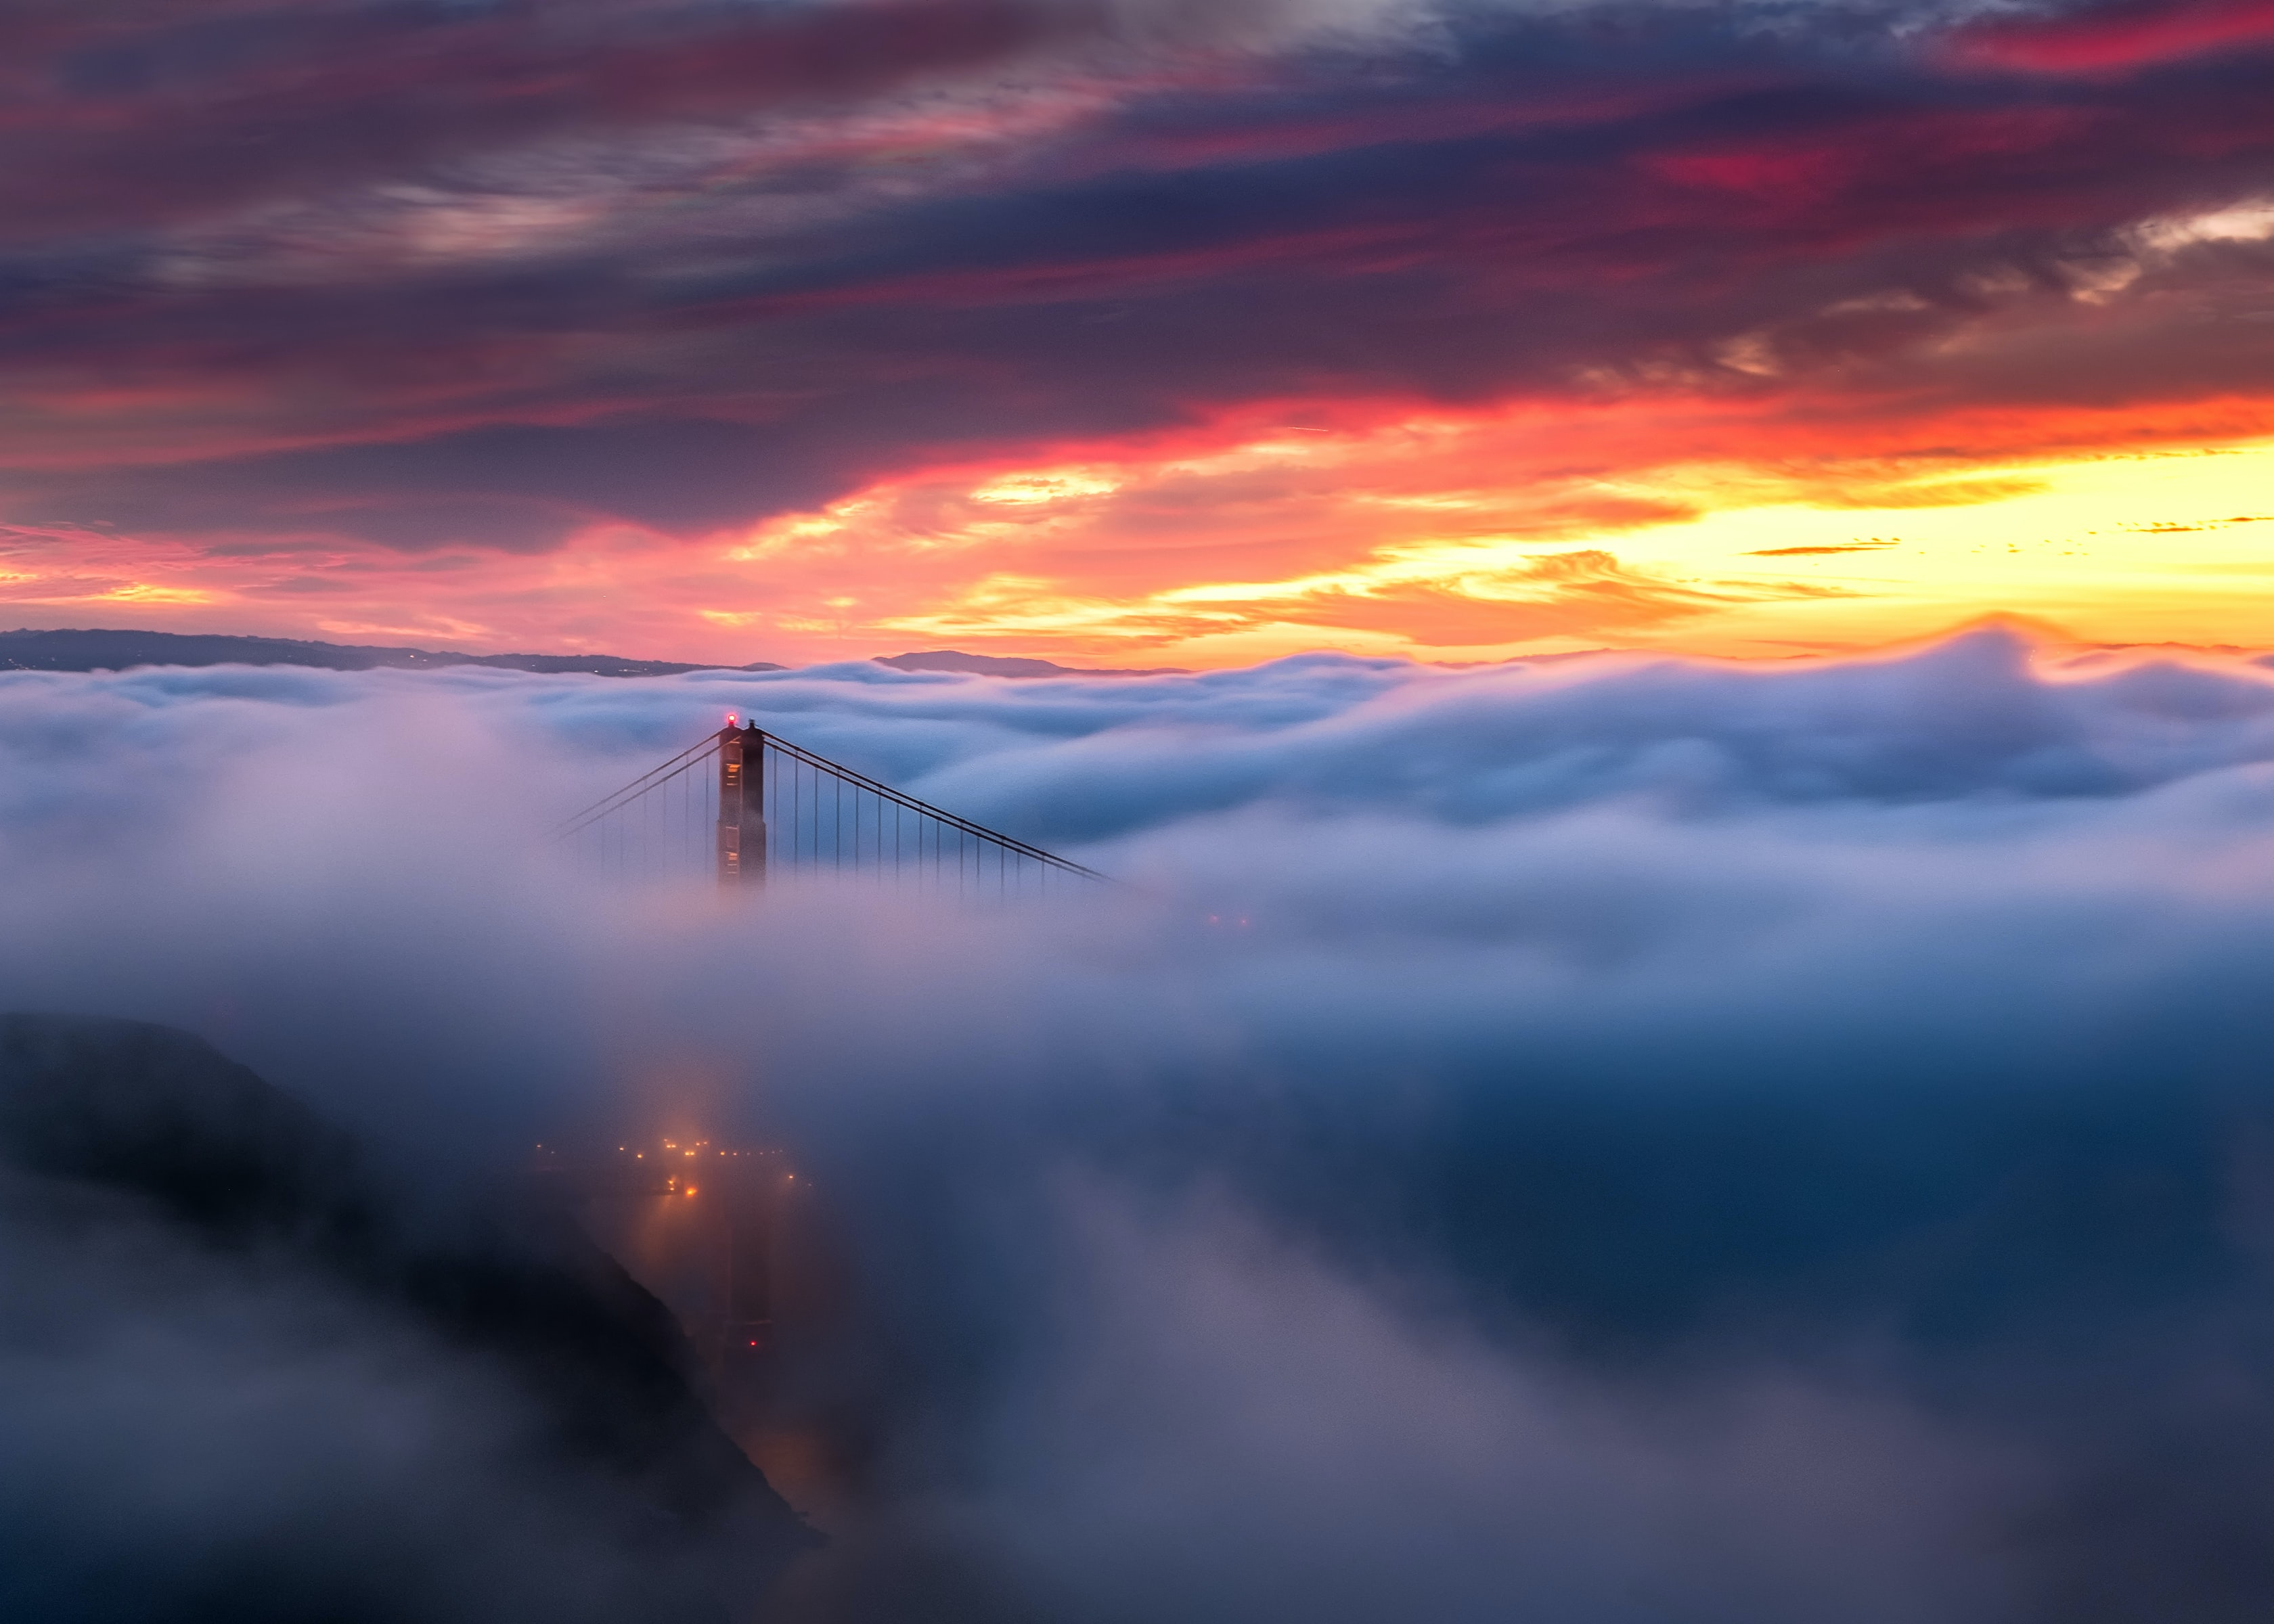 Golden Gate Bridge during golden hour